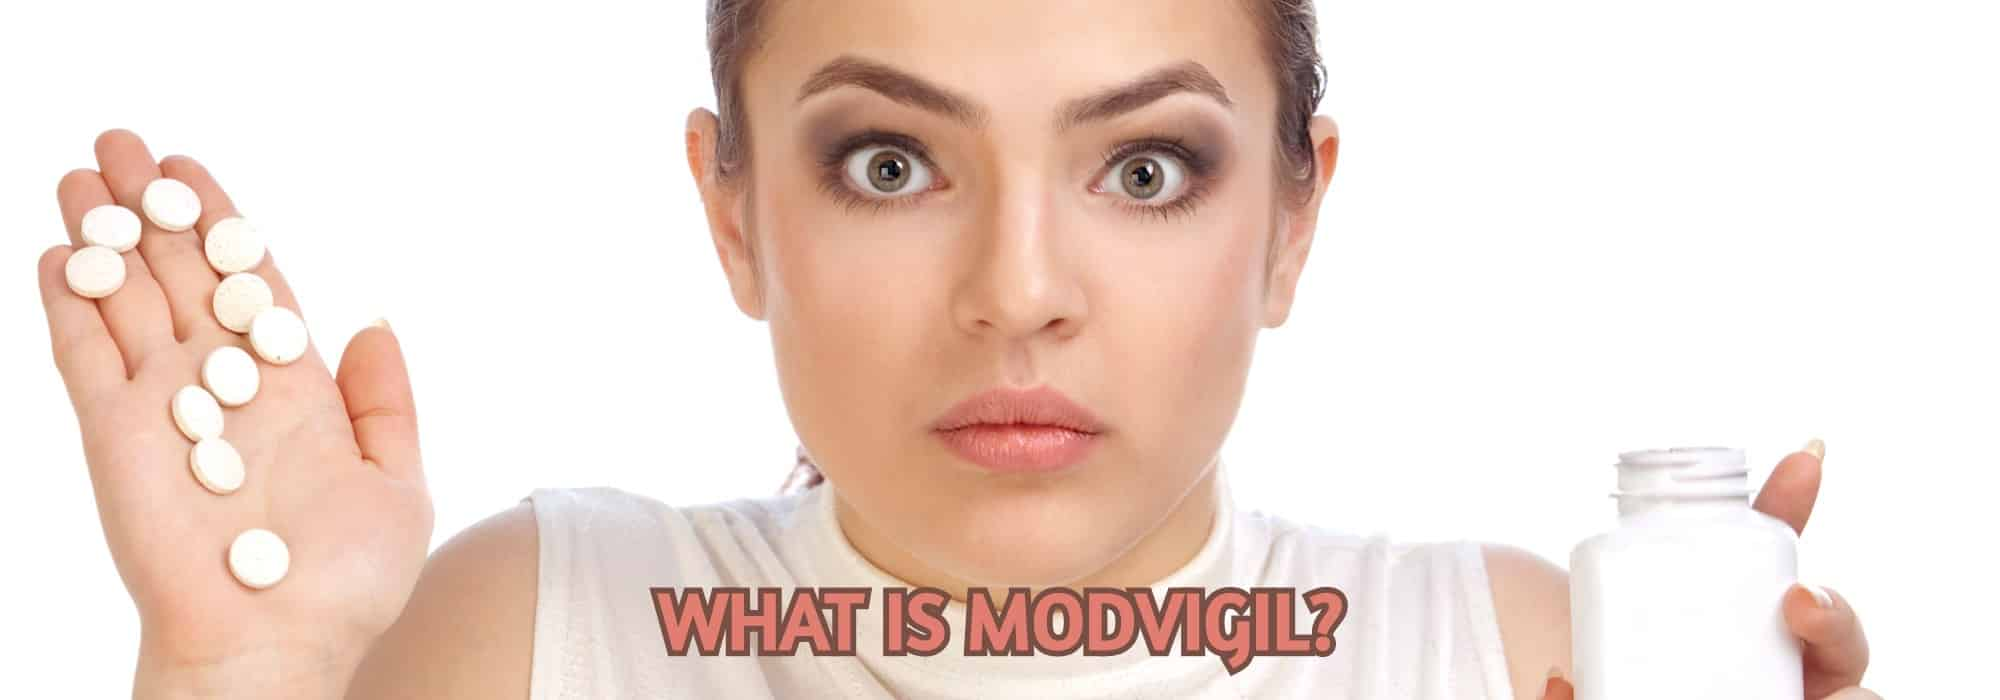 WHAT IS MODVIGIL